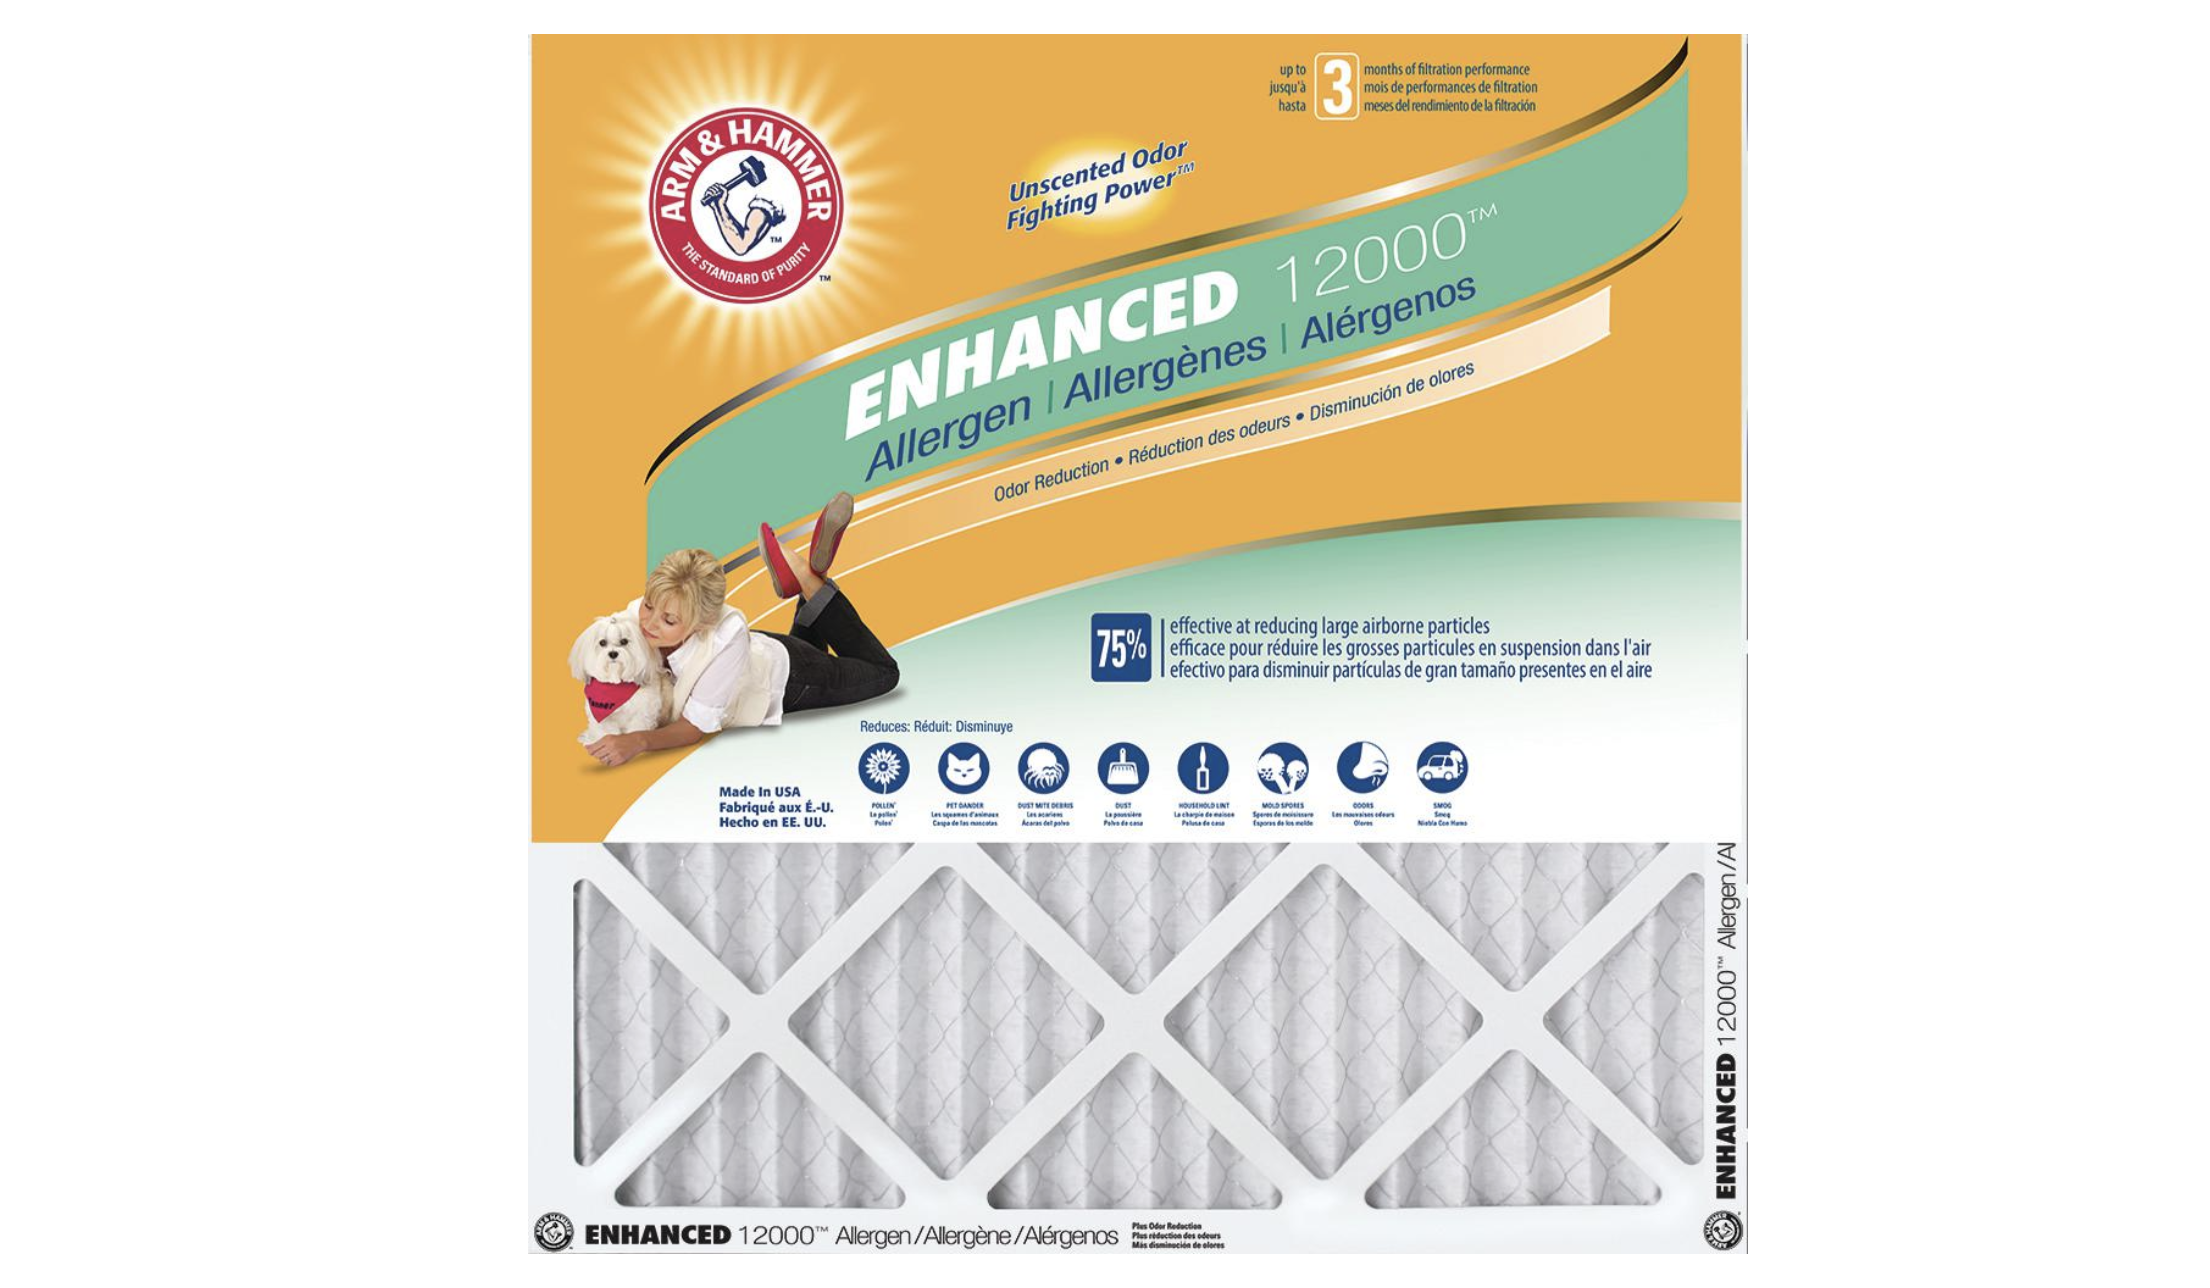 Air Filters by Arm & Hammer (4 pk) Now 19.99!! Today Only